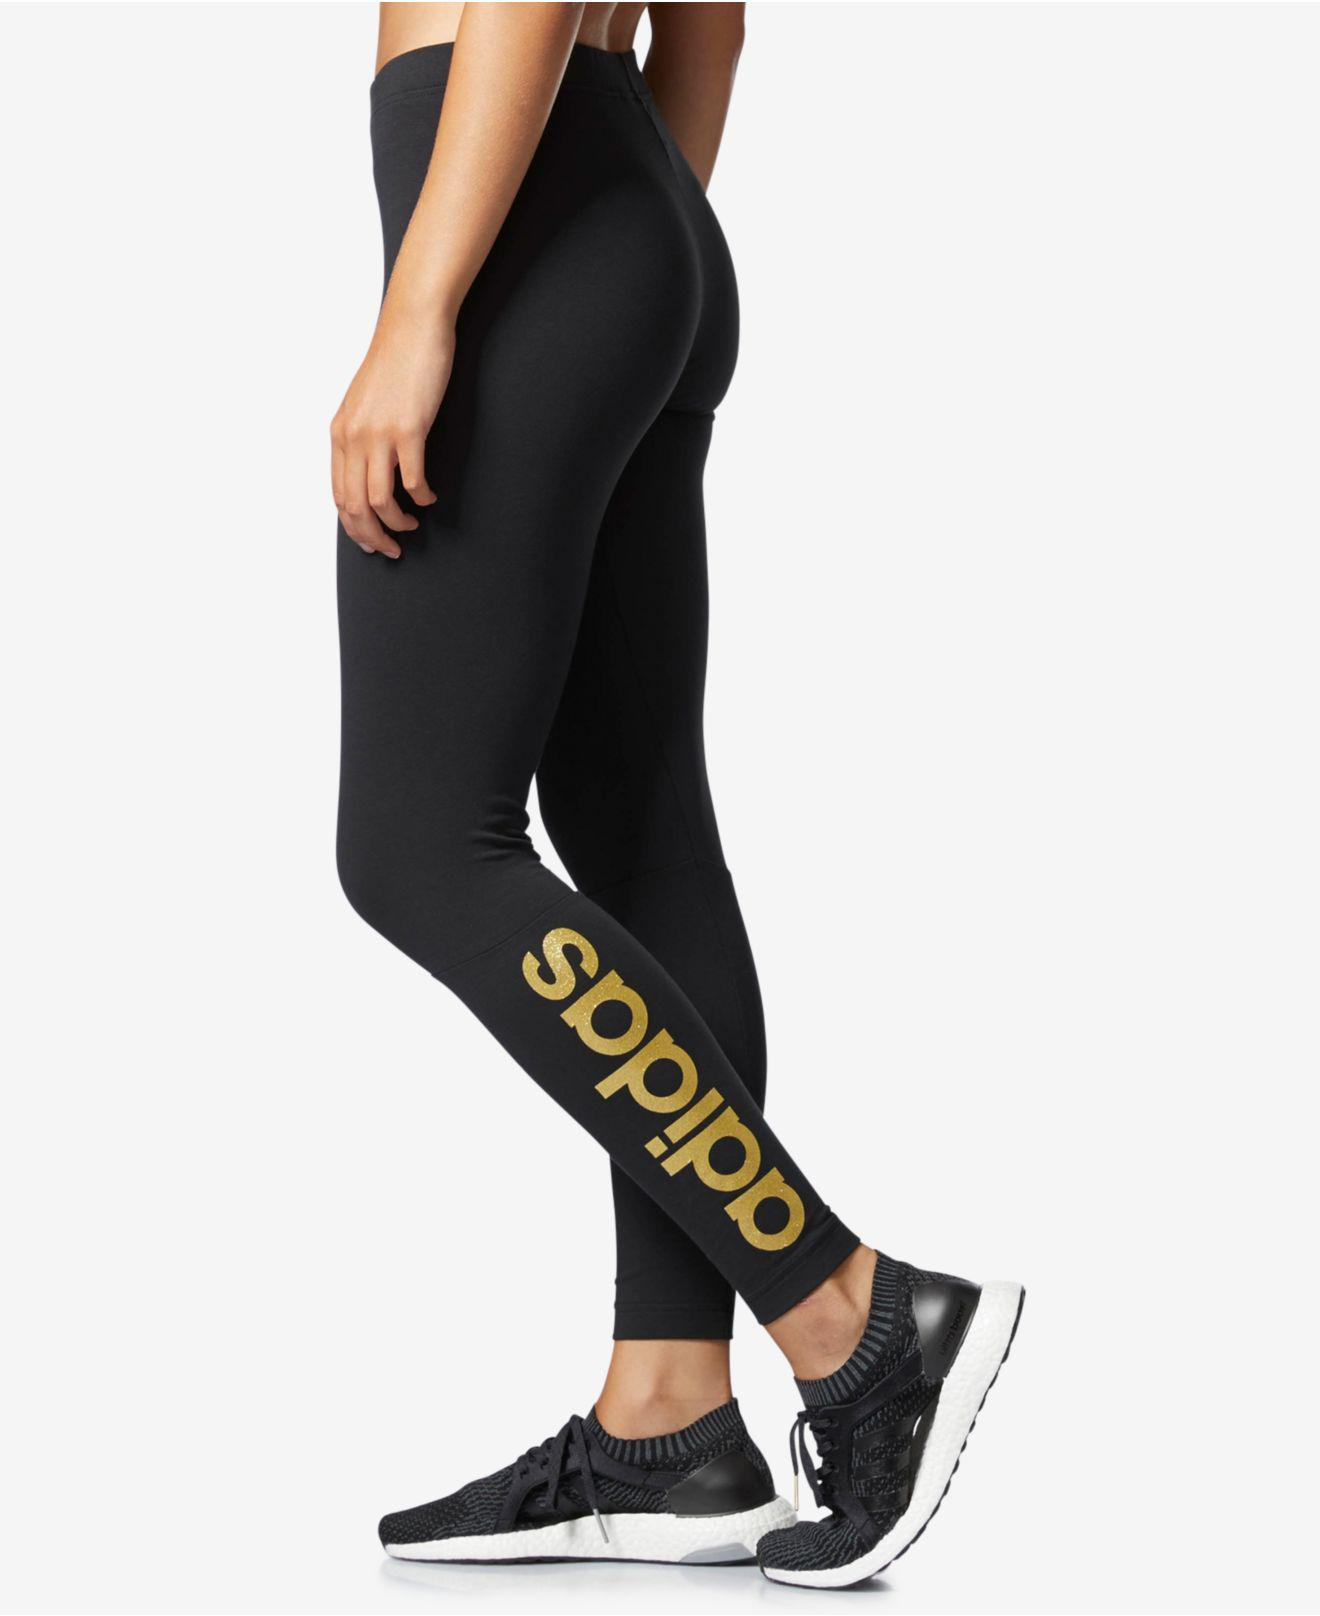 adidas leggings logo